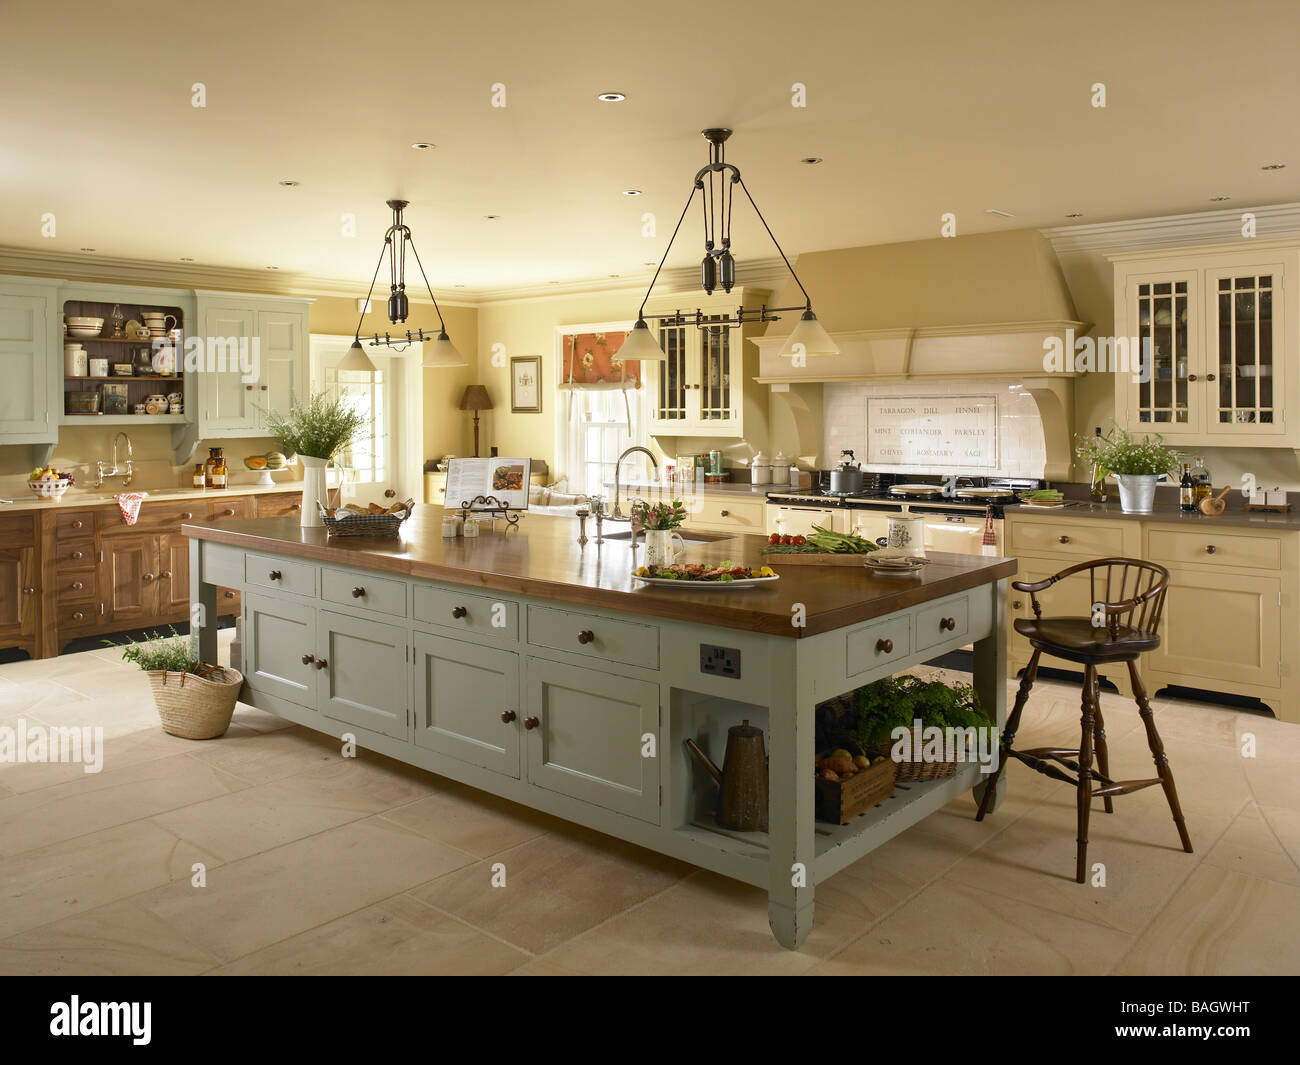 A large kitchen island unit Stock Photo  Royalty Free Image